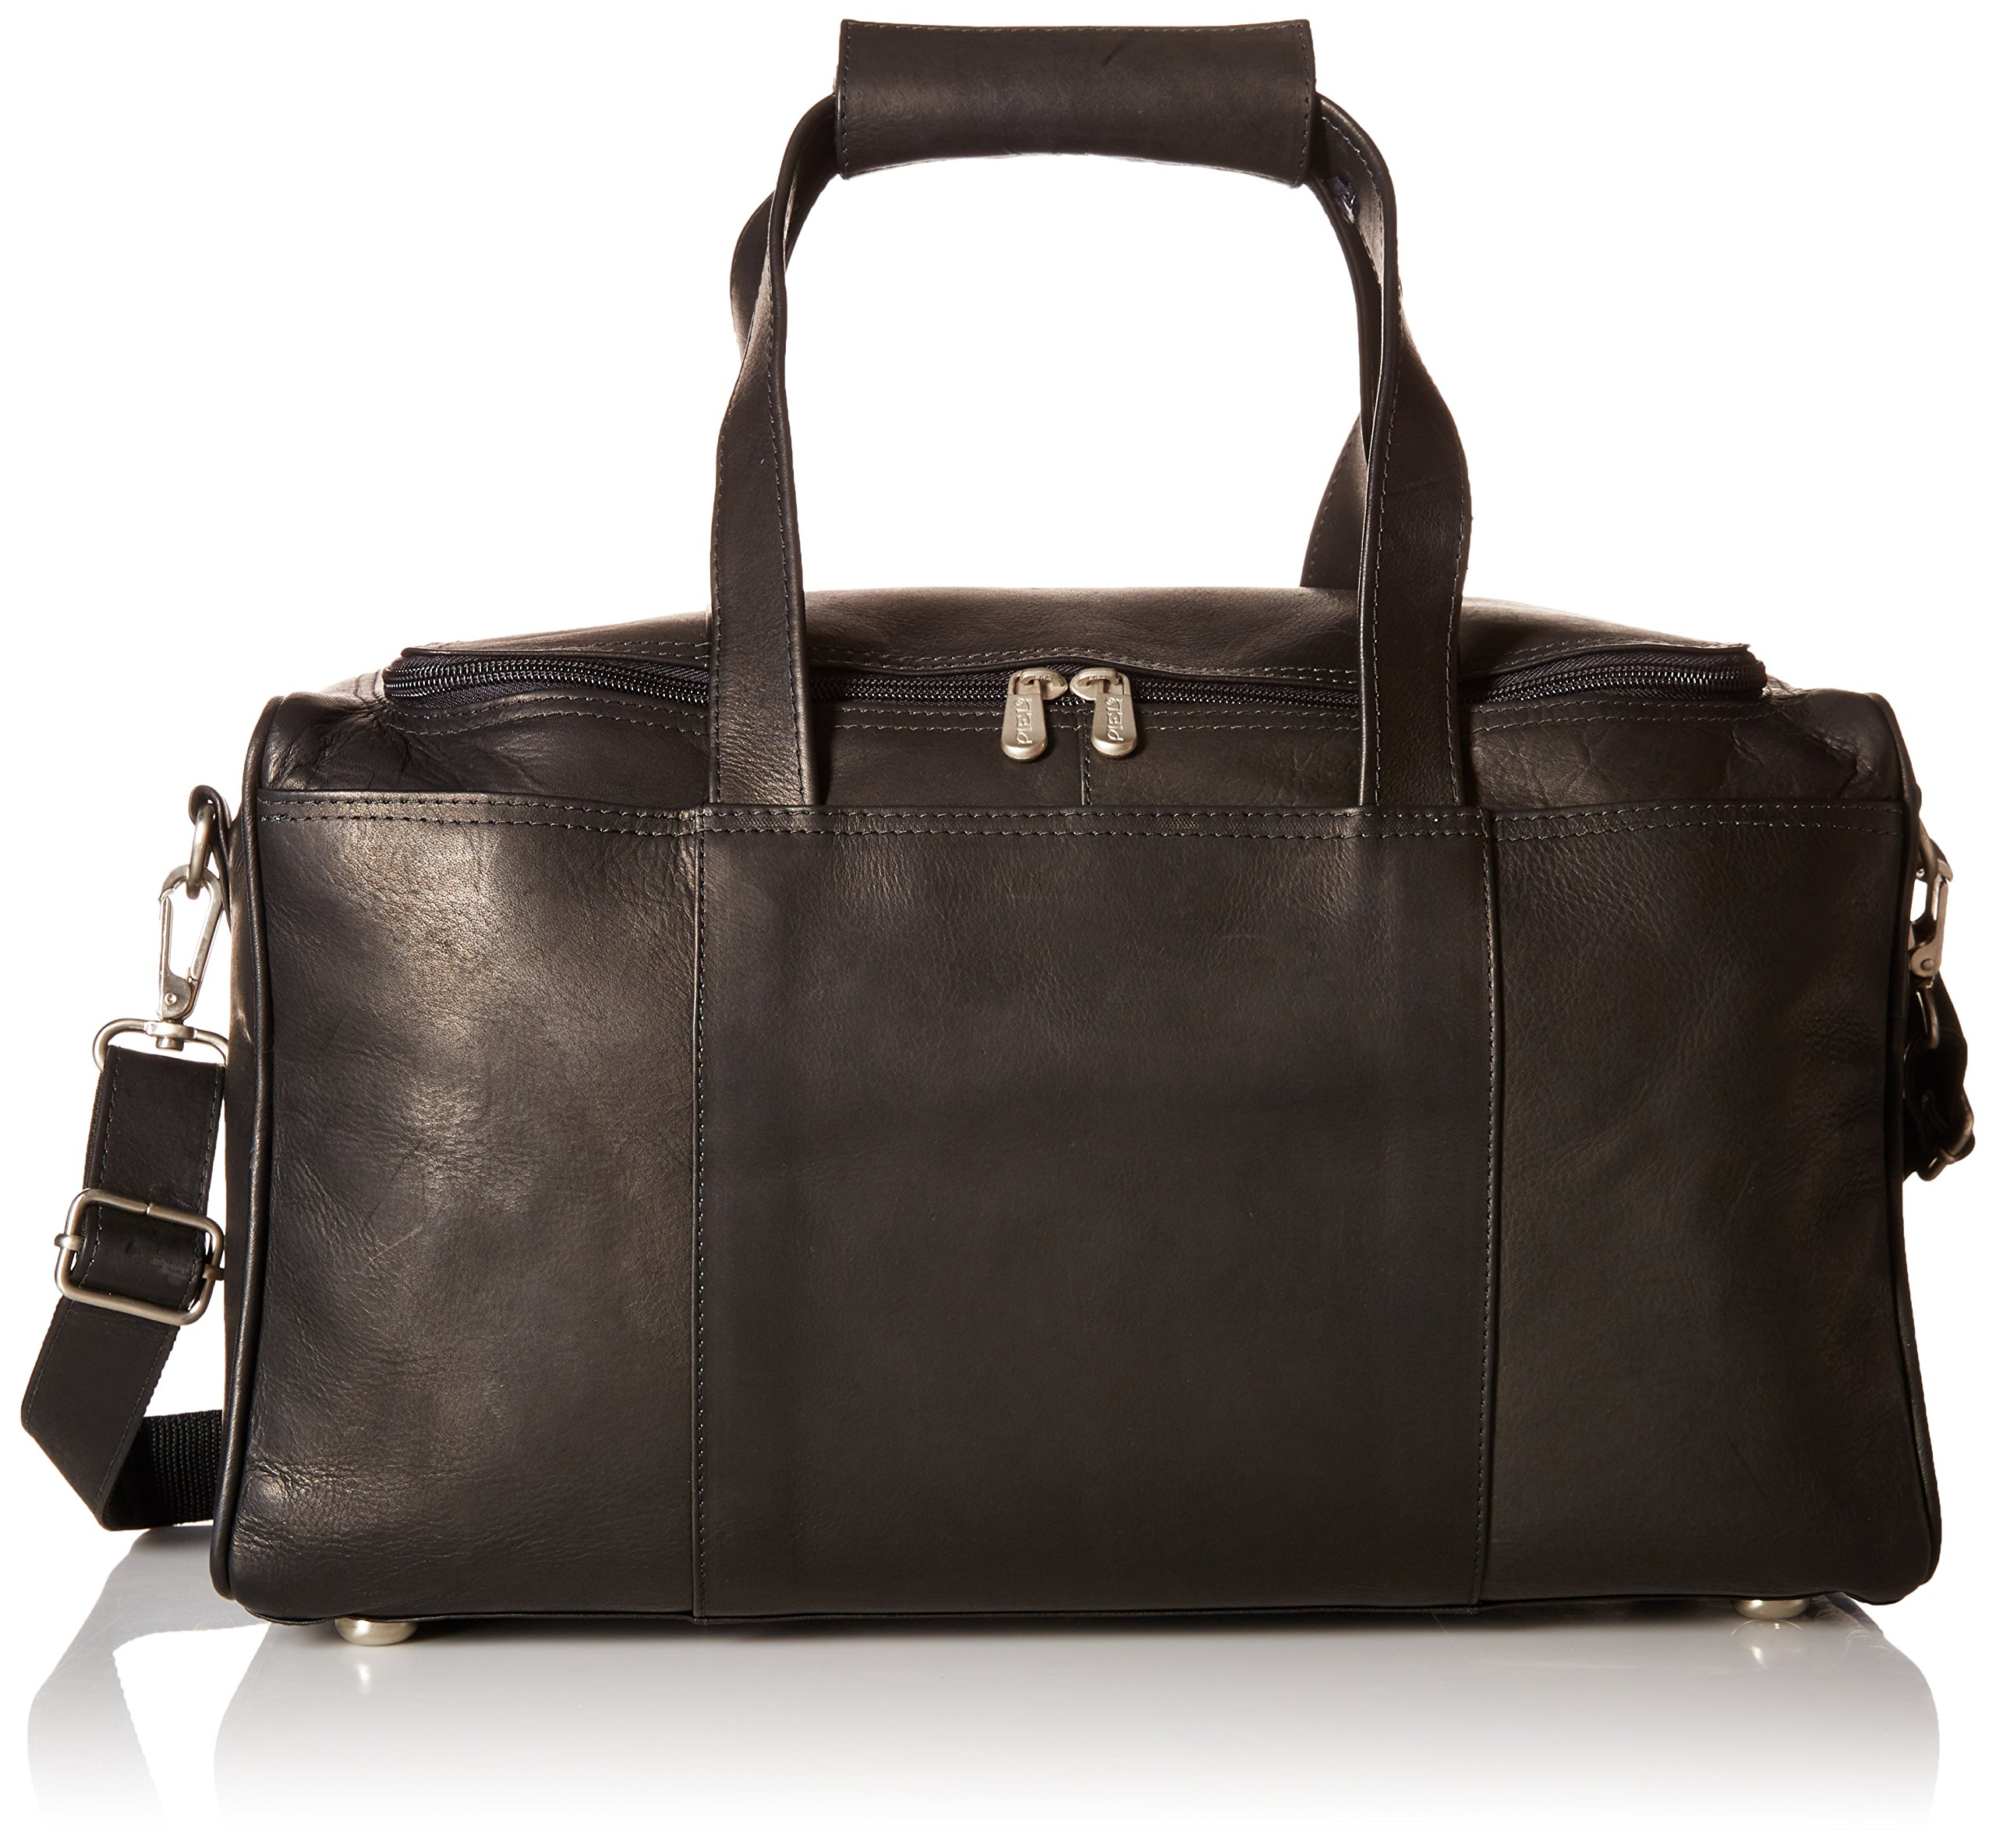 Piel Leather Traveler's Select X-Small Duffel Bag, Black, One Size by Piel Leather